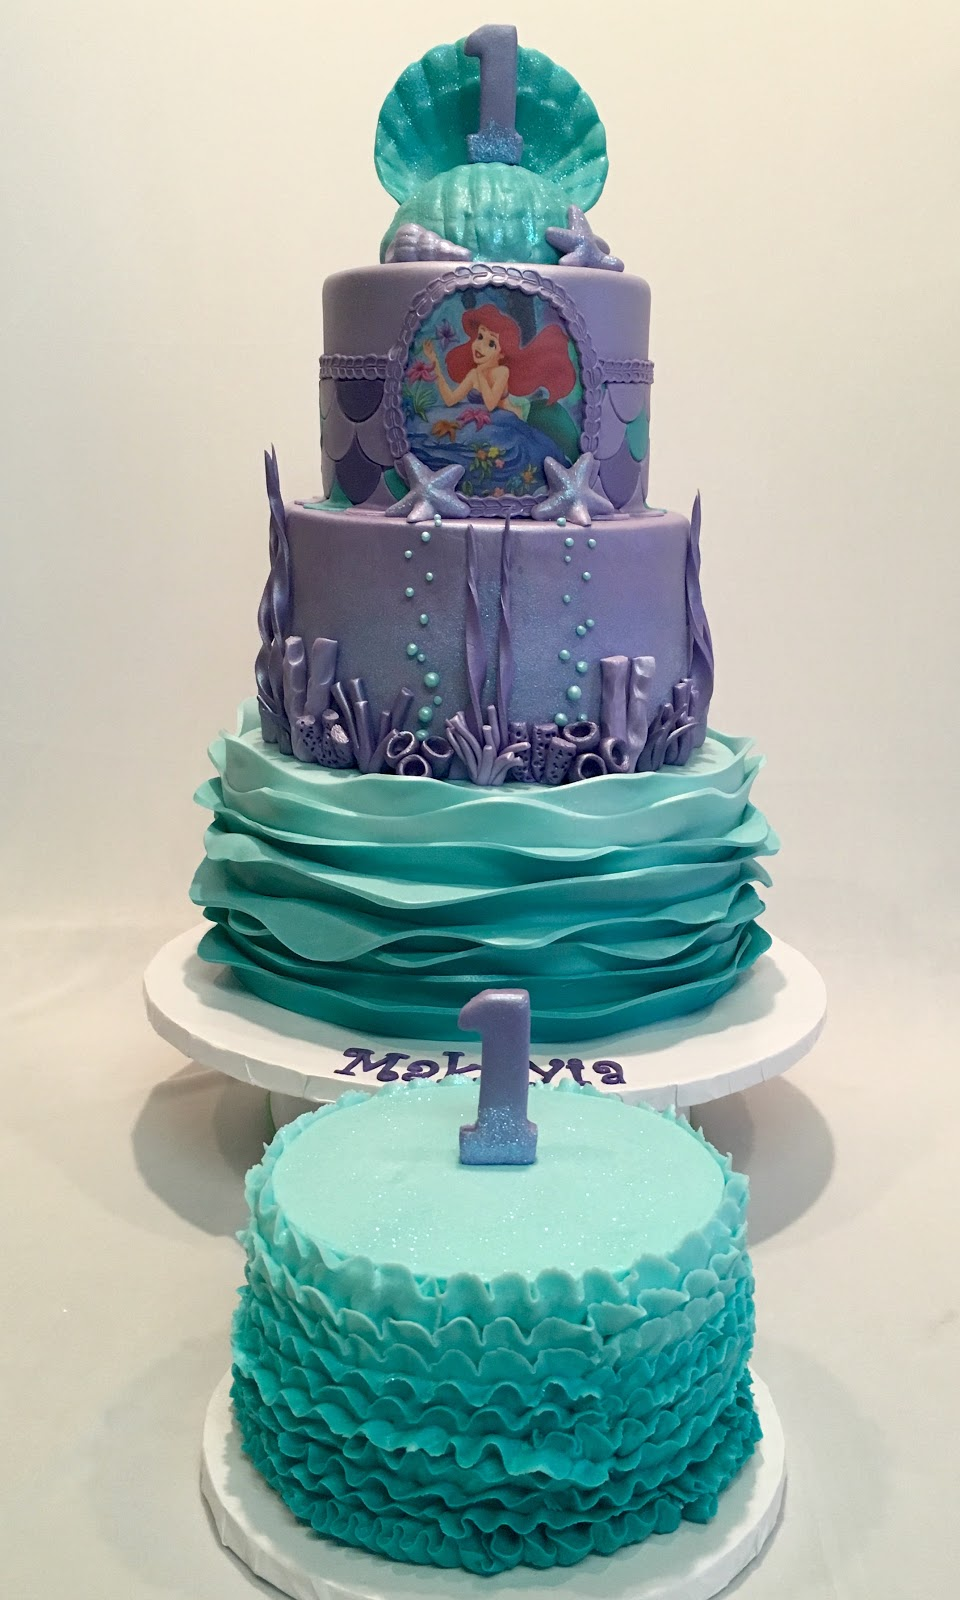 Under The Sea Little Mermaid Theme Cake With Ombré Waves And Seashell Topper